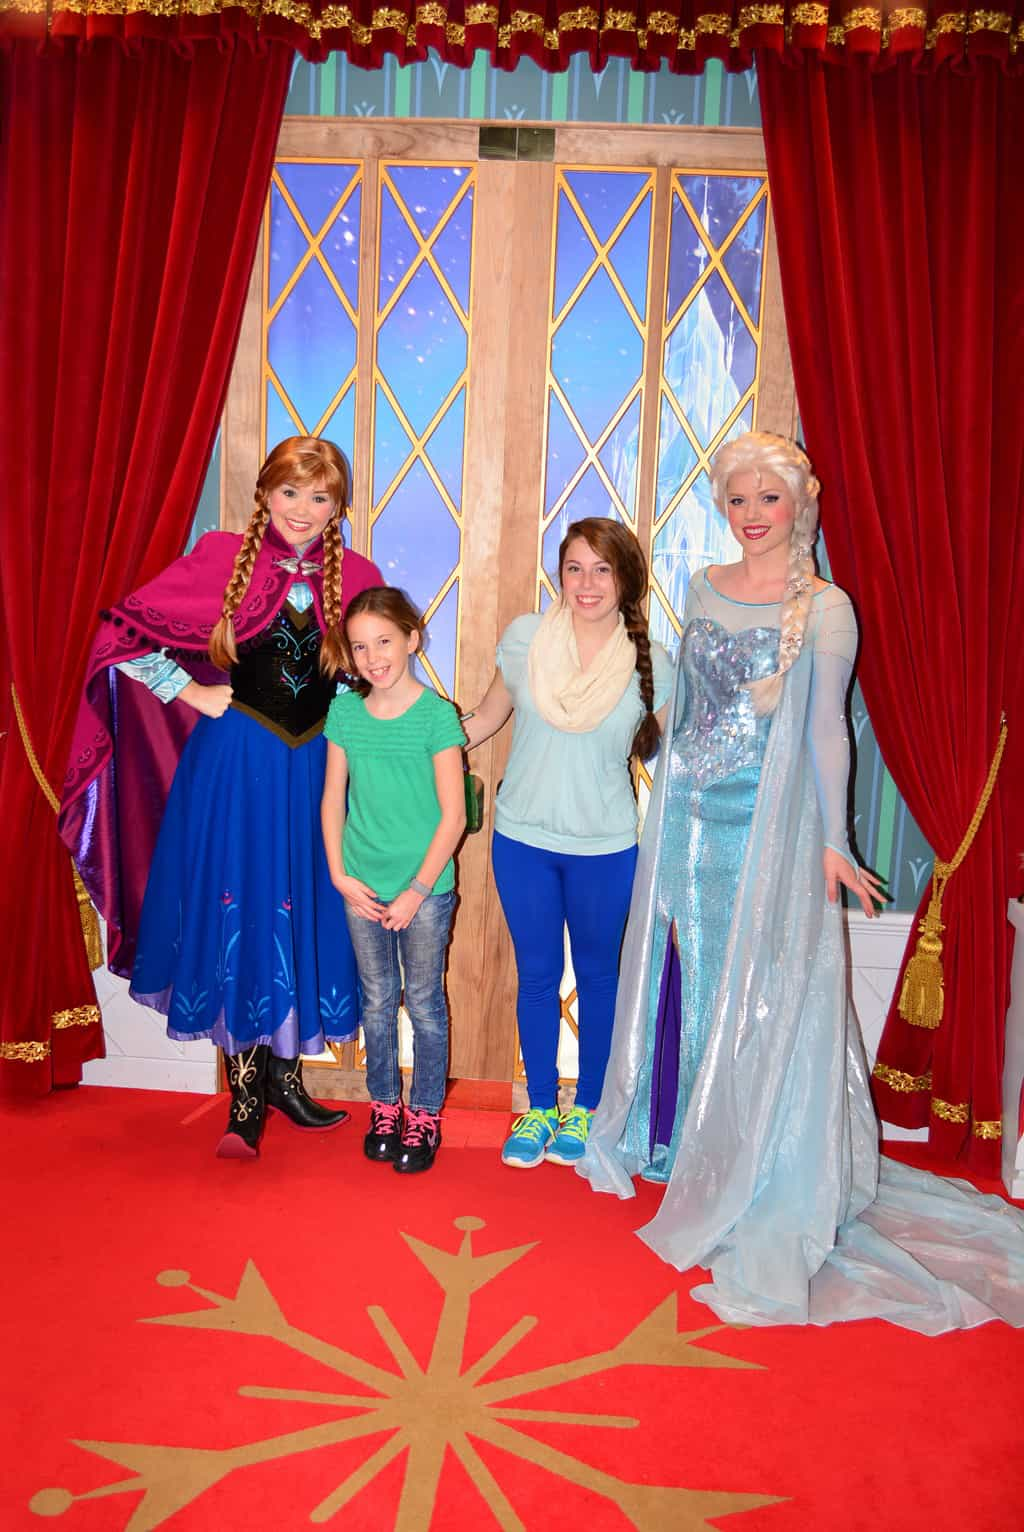 Walt Disney World, Epcot, Norway, Anna and Elsa meet and greet